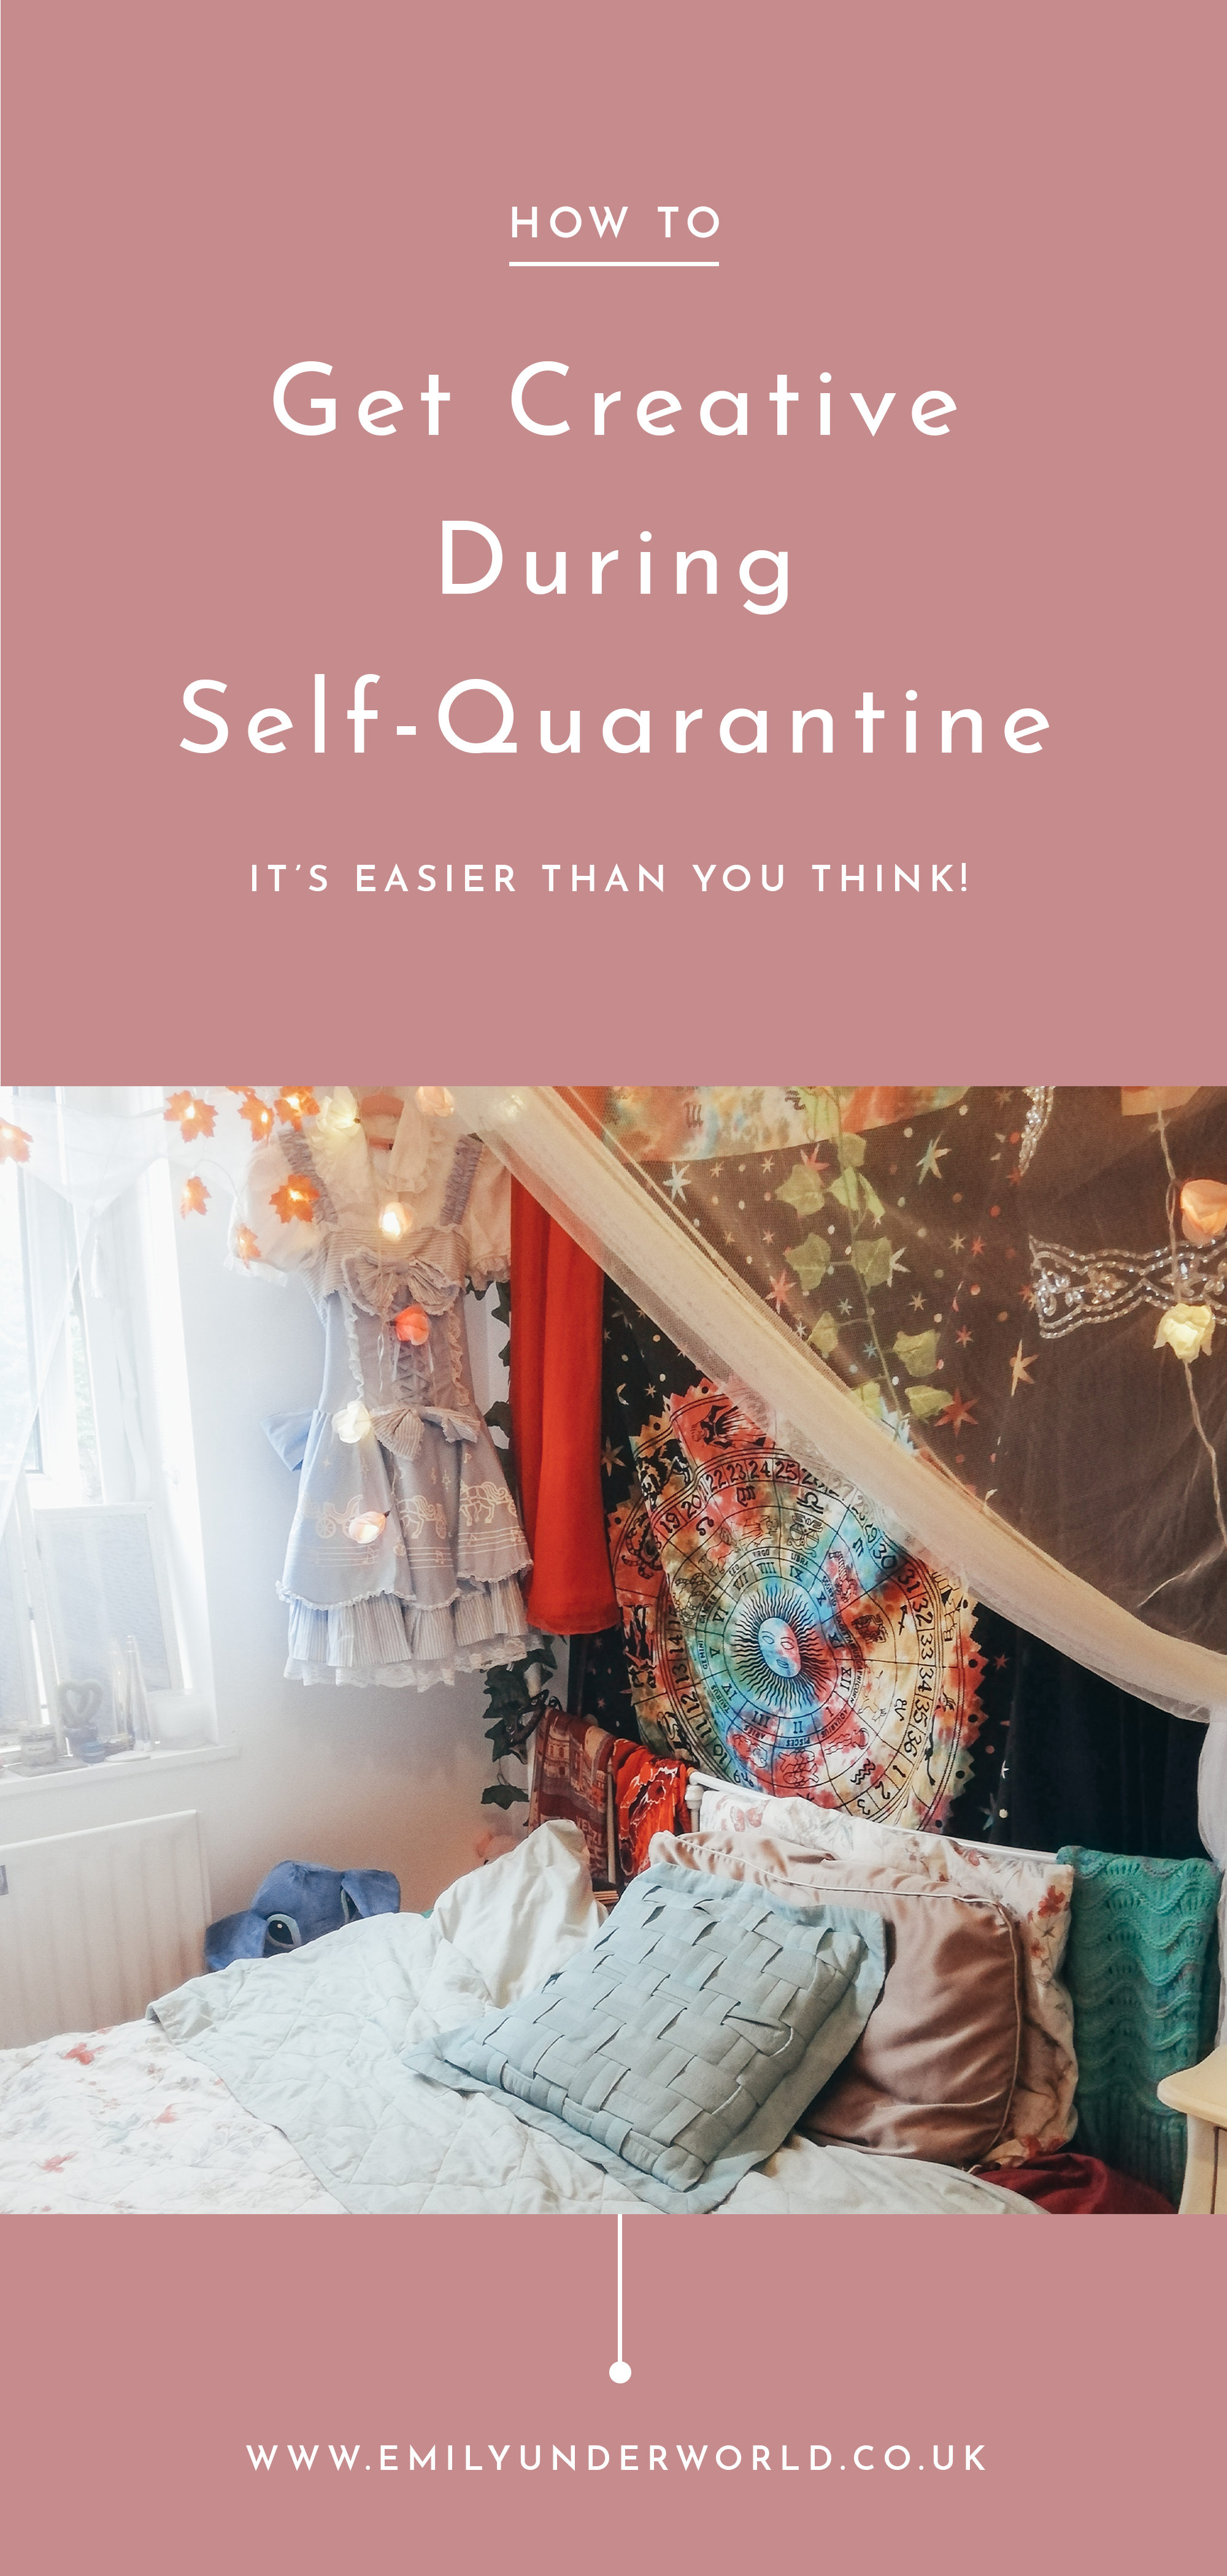 How To Get Creative During Self-Quarantine